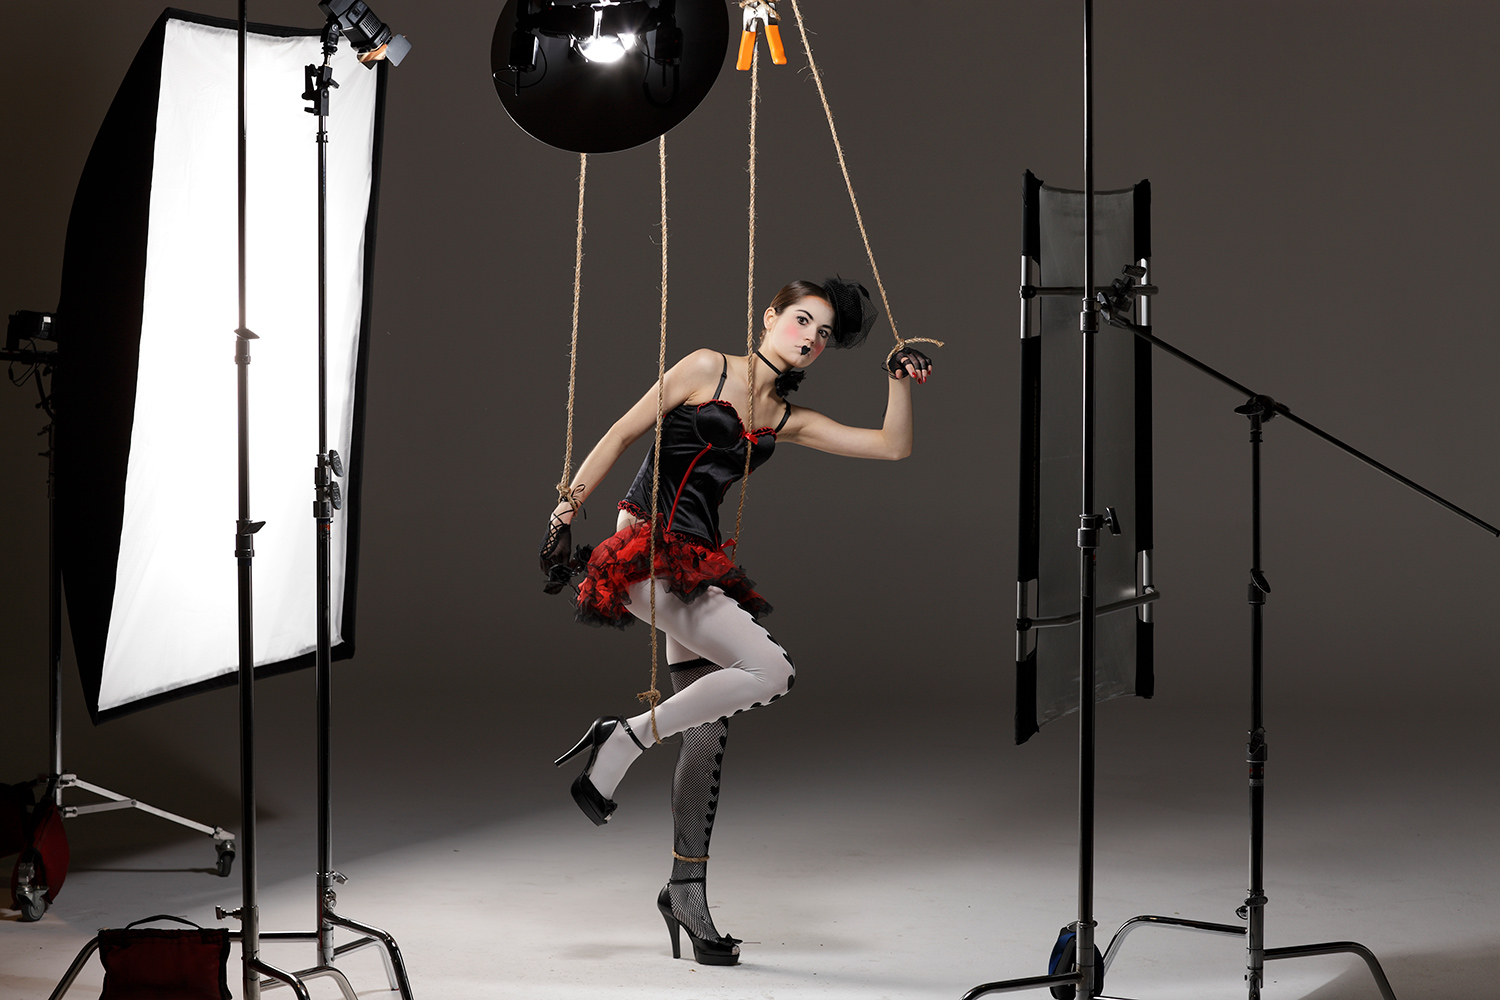 Bruce Dorn photography – a shot of the studio set up for his marionette shoot.